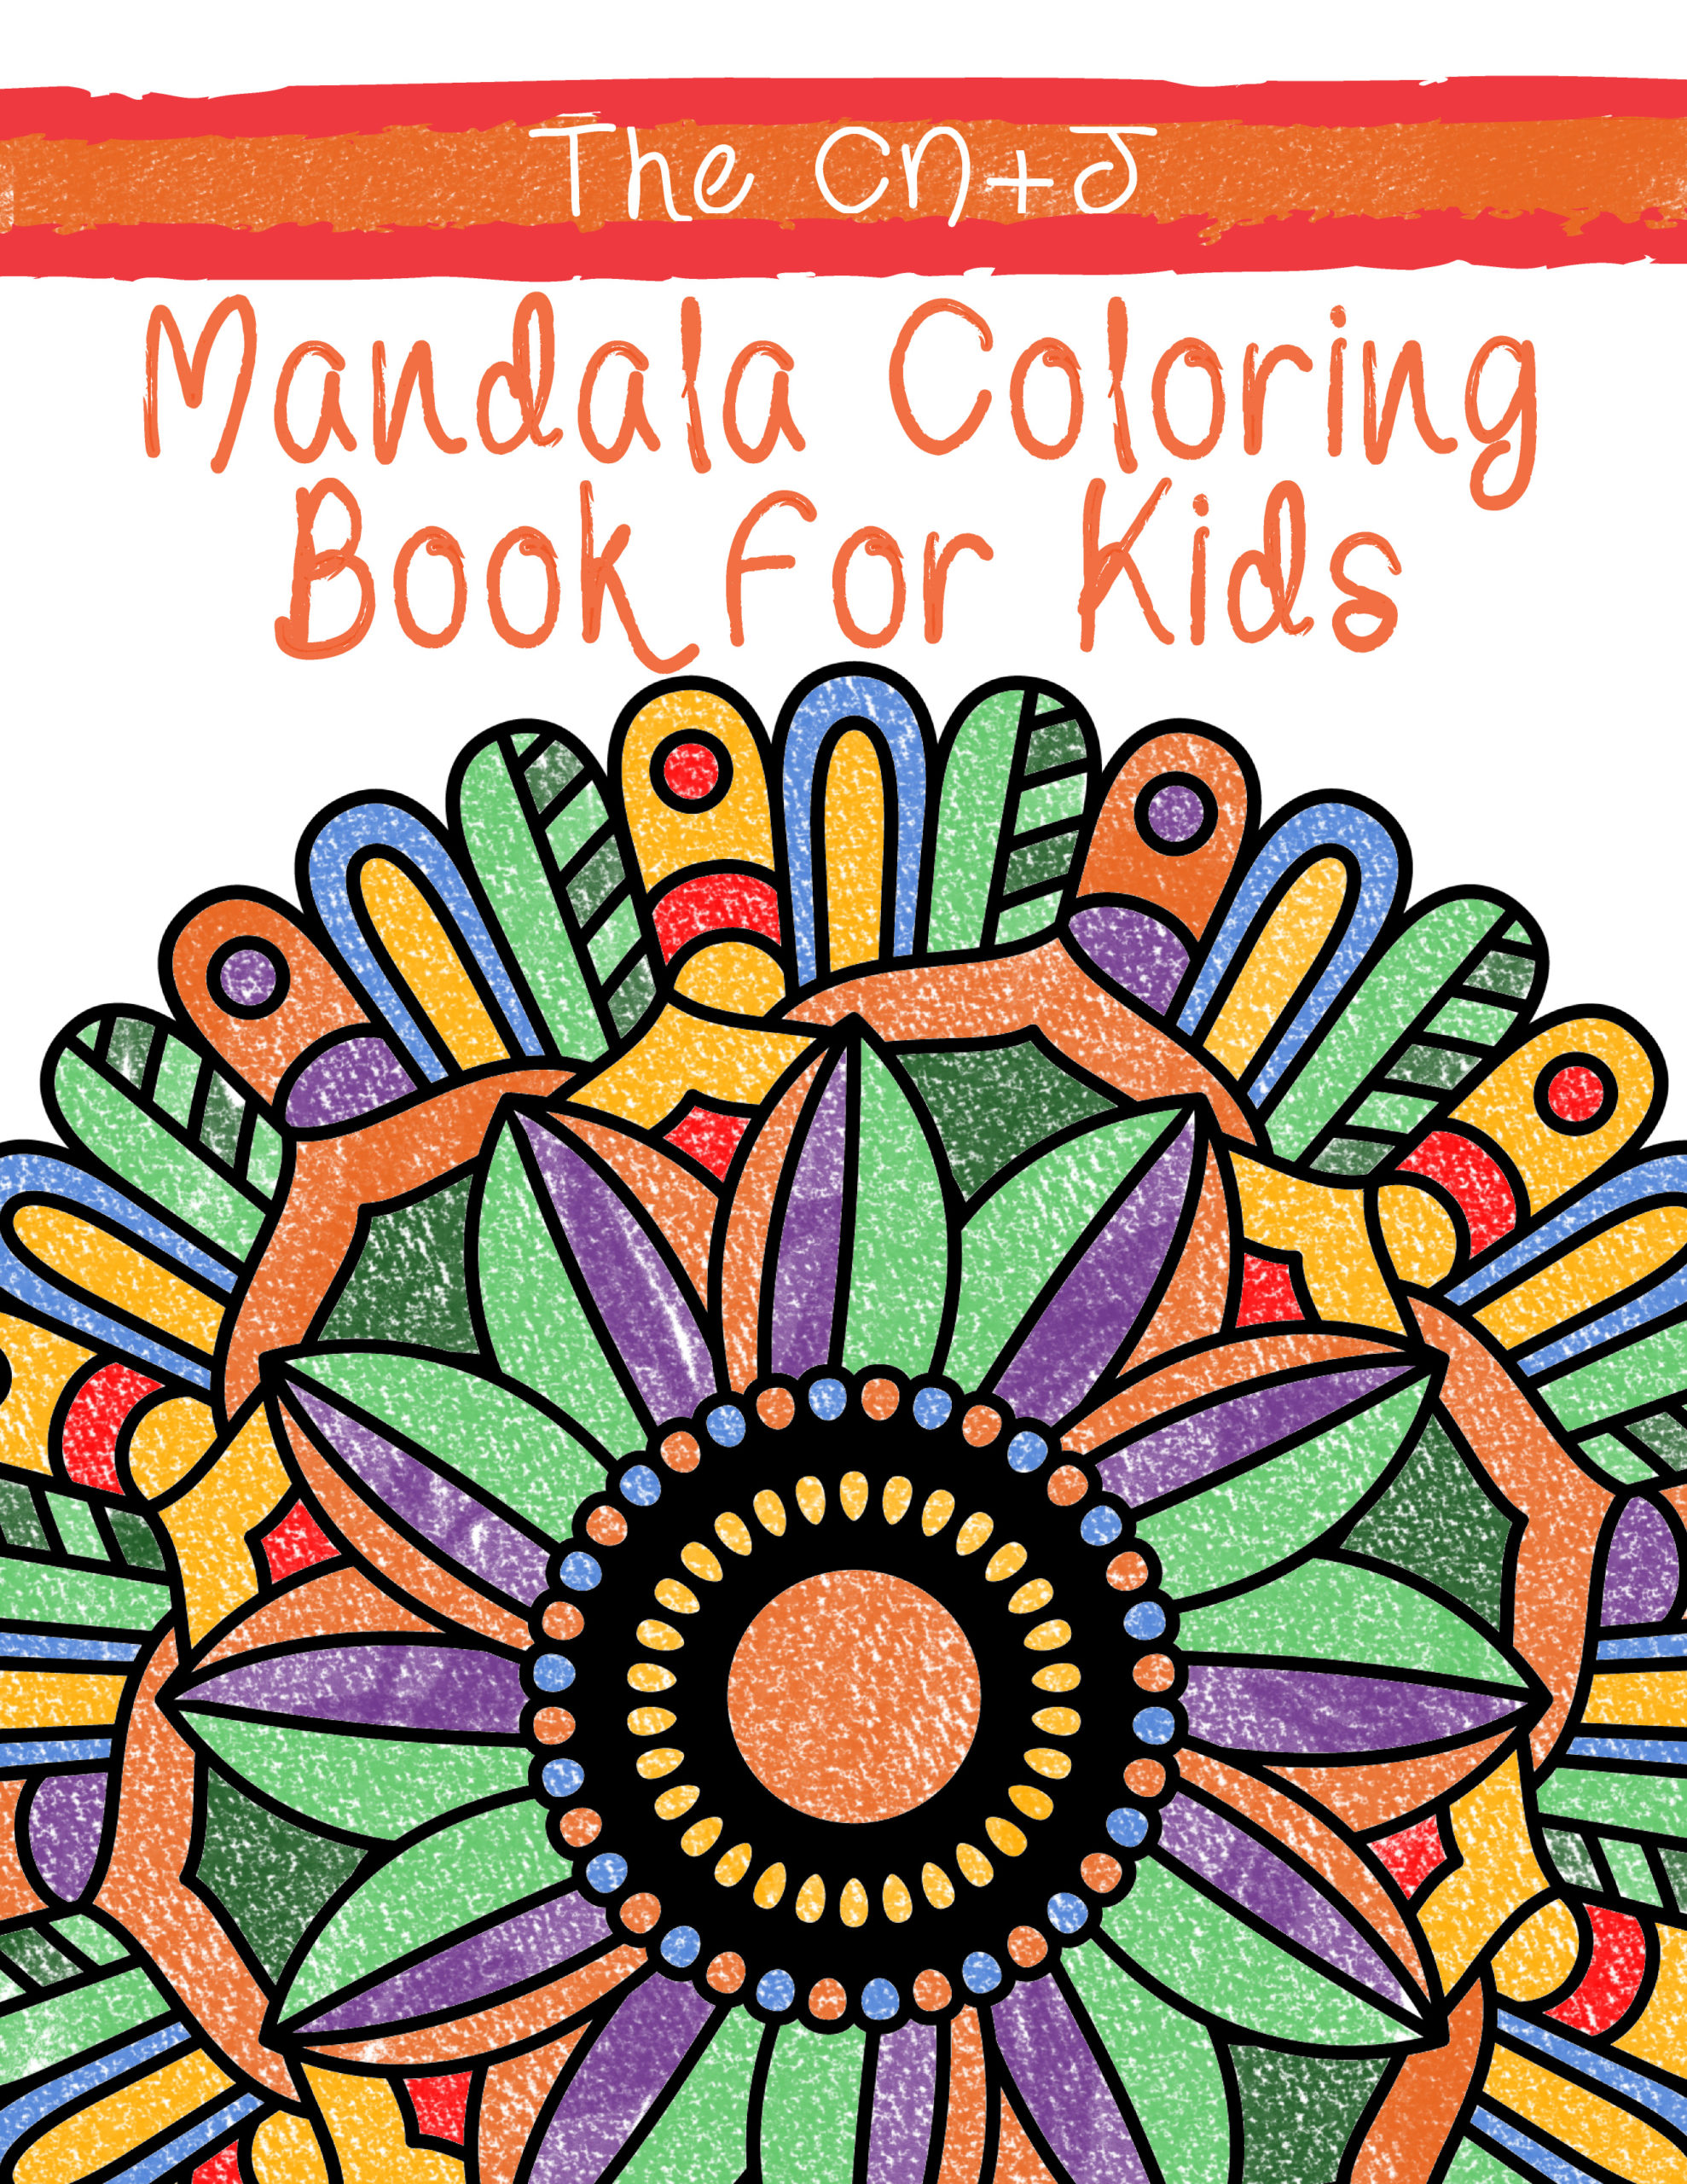 Mandala-Coloring-Book-for-Kids-9-12-Cover-front